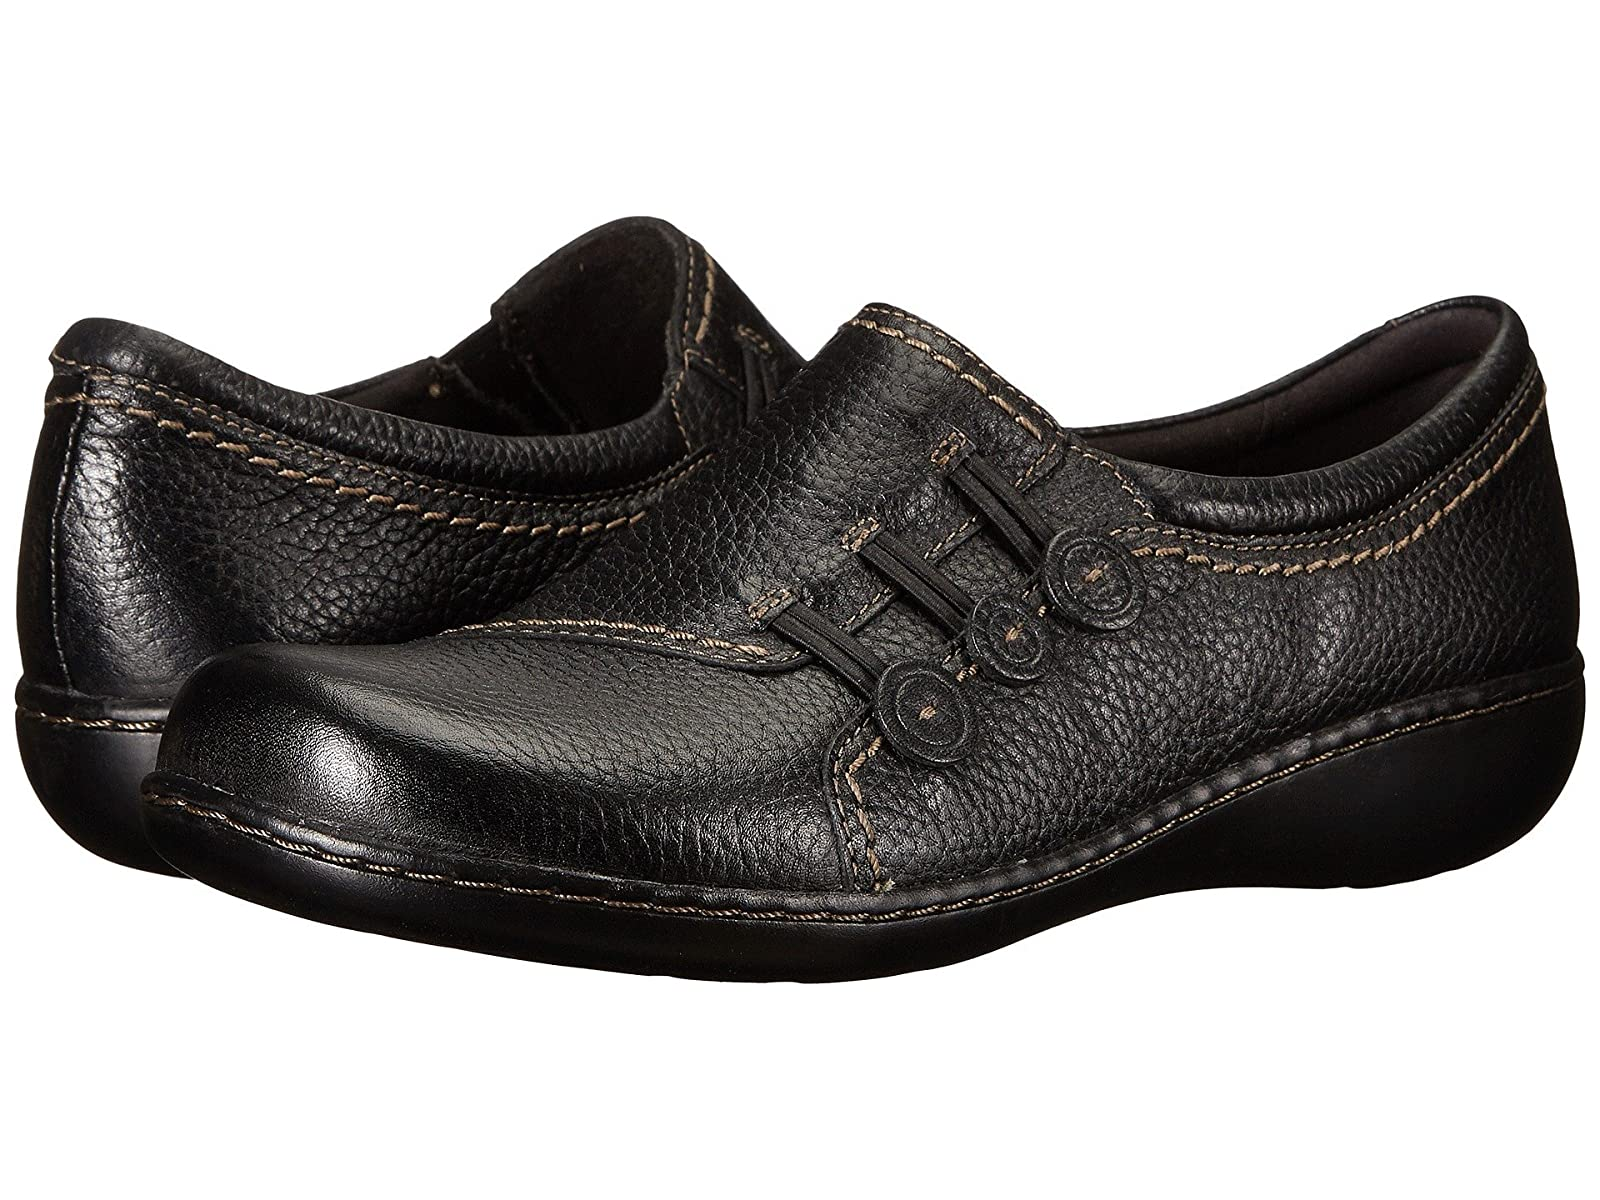 Clarks Ashland EffieCheap and distinctive eye-catching shoes